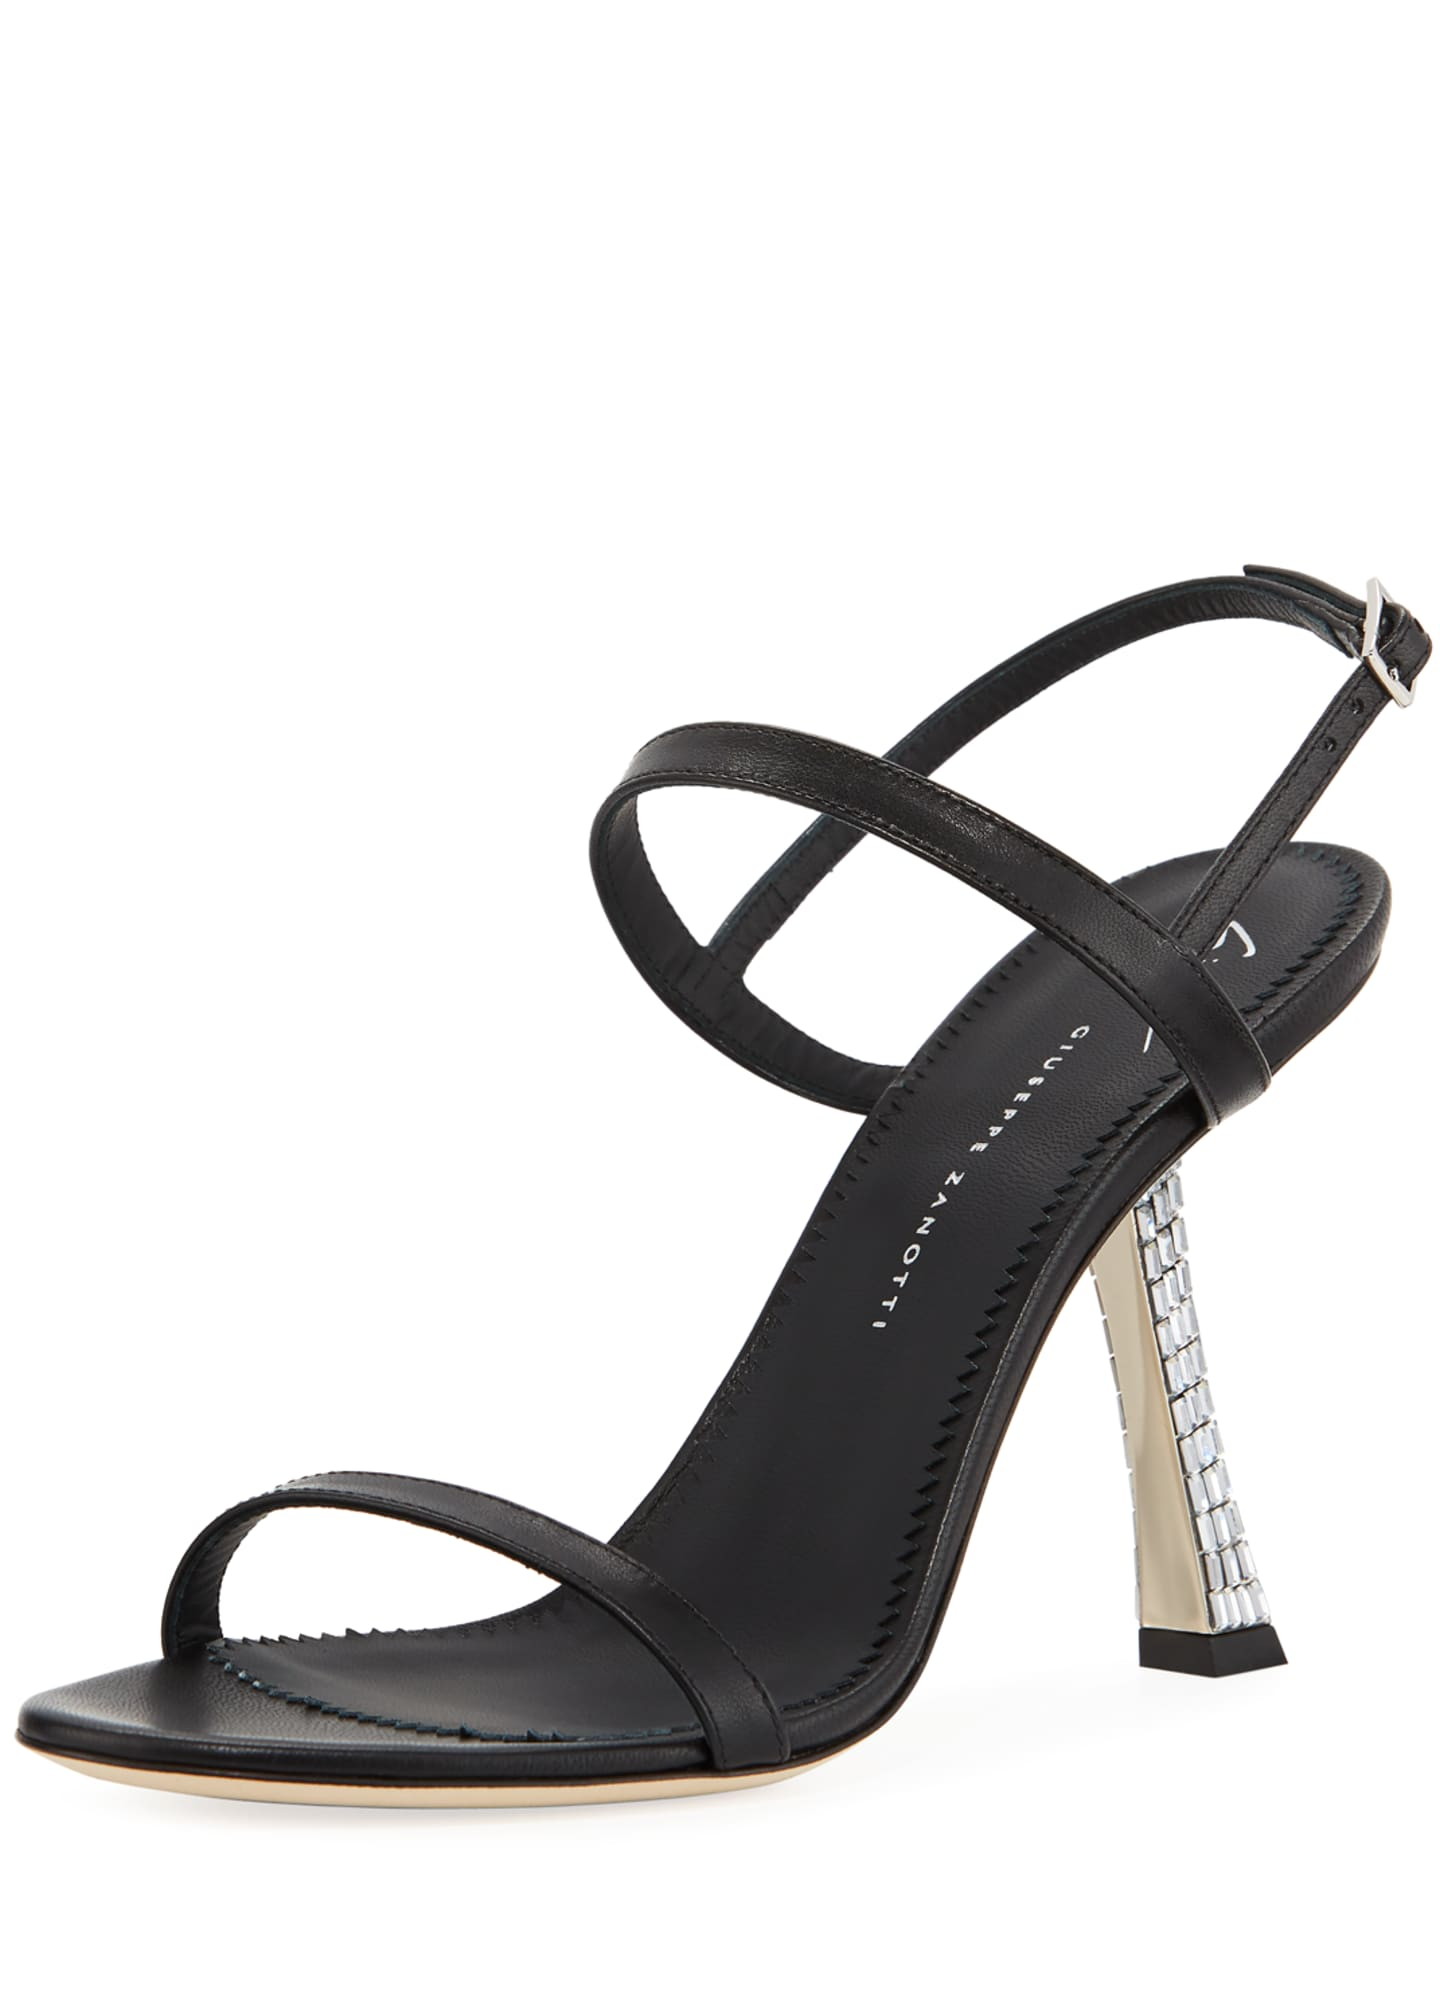 Giuseppe Zanotti Leather Sandals with Crystal Heel